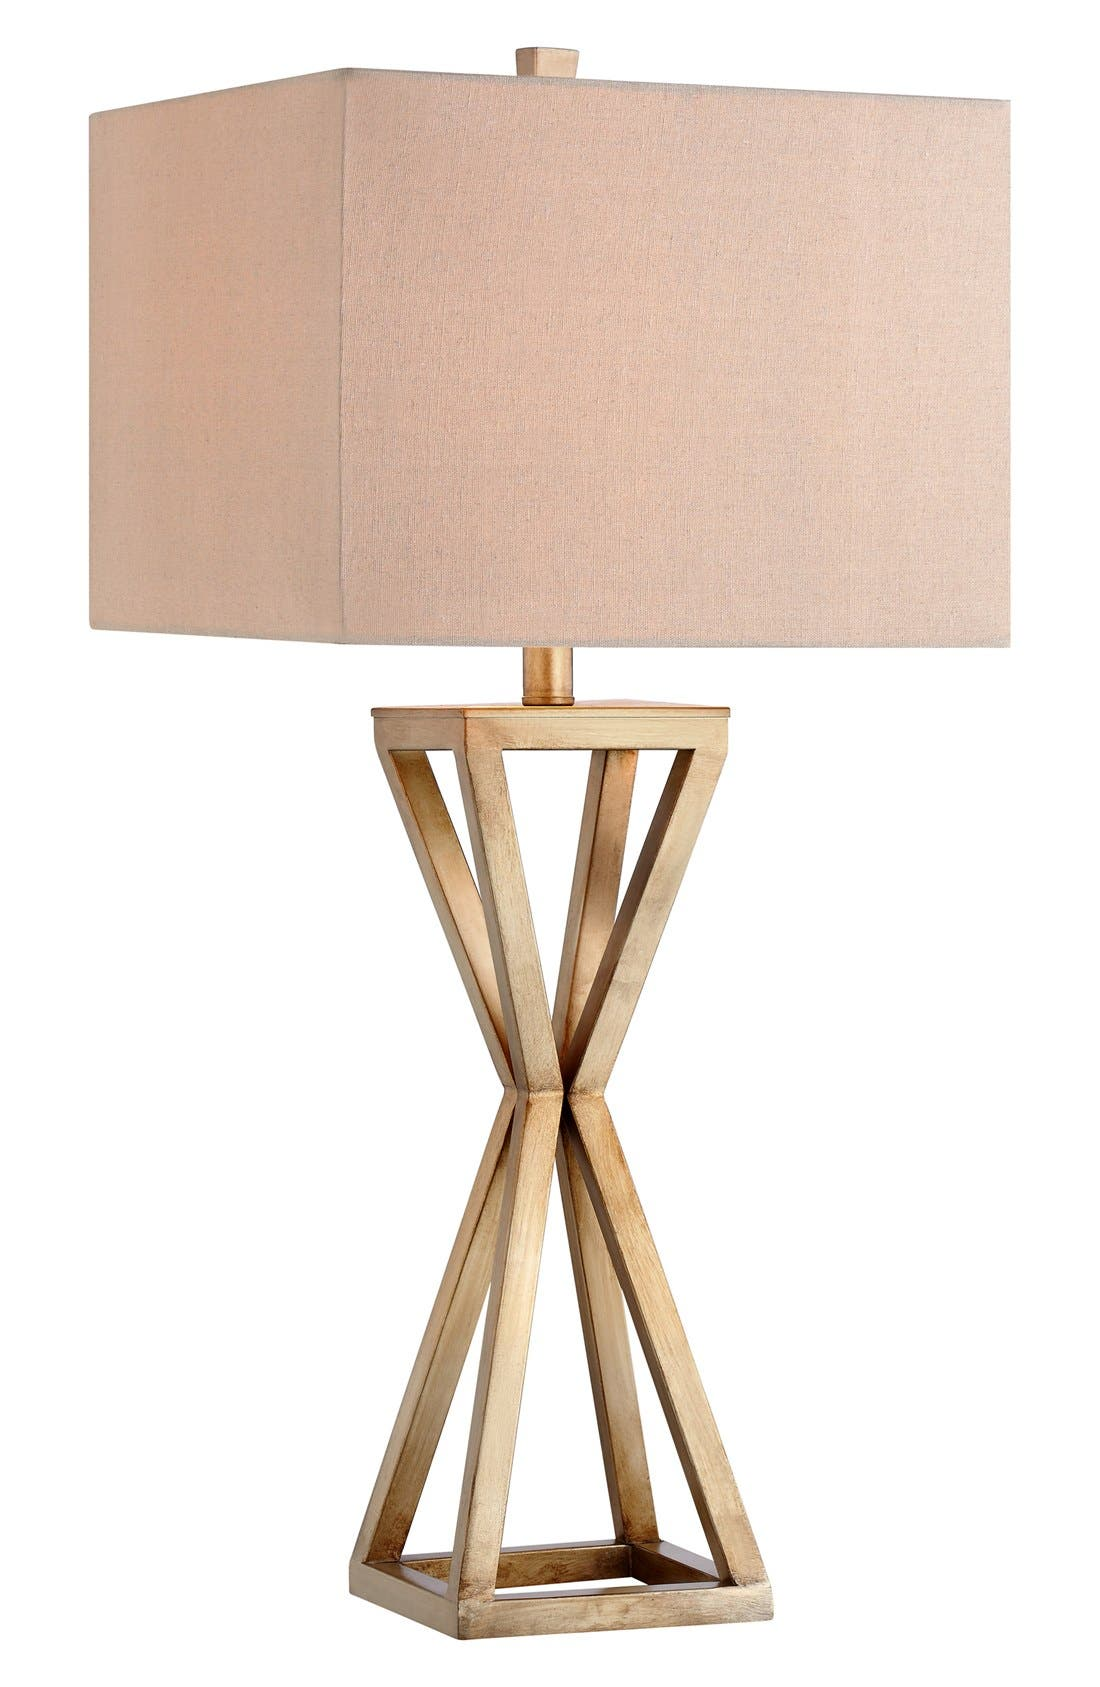 Open Caged Metal Table Lamp,                             Main thumbnail 1, color,                             Gold